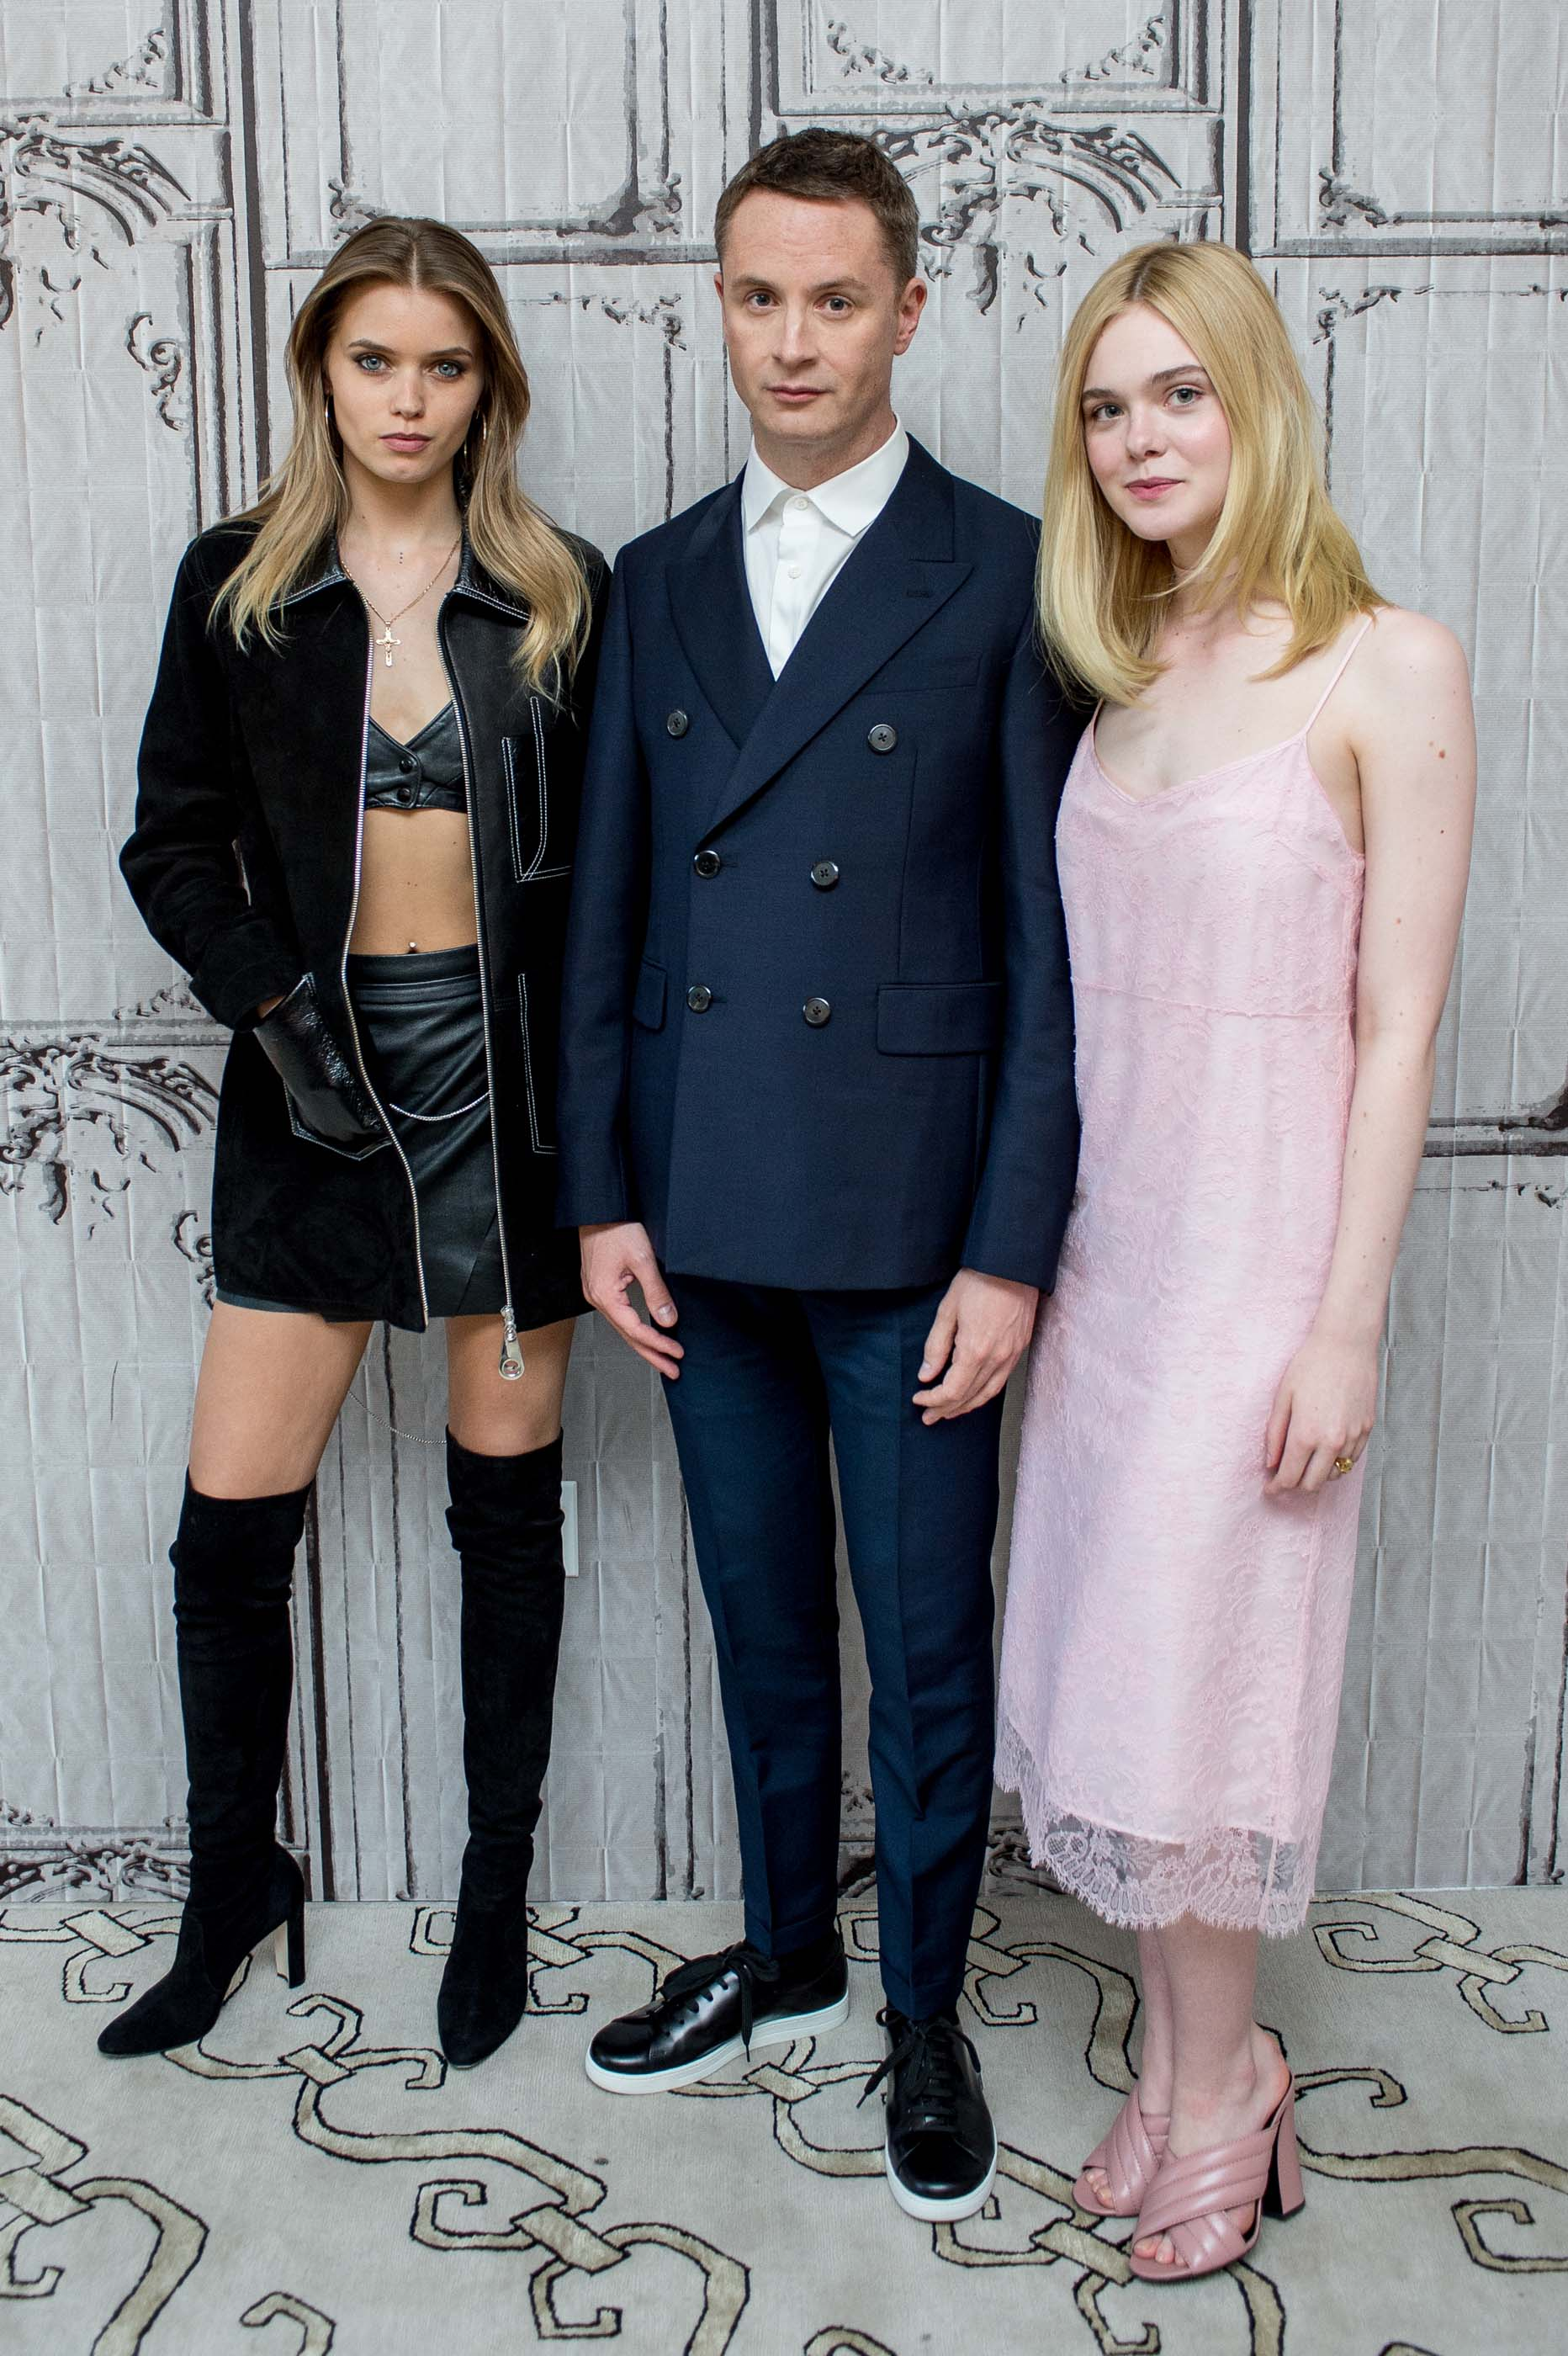 Abbey Lee attends AOL Build to discuss the film The Neon Demon